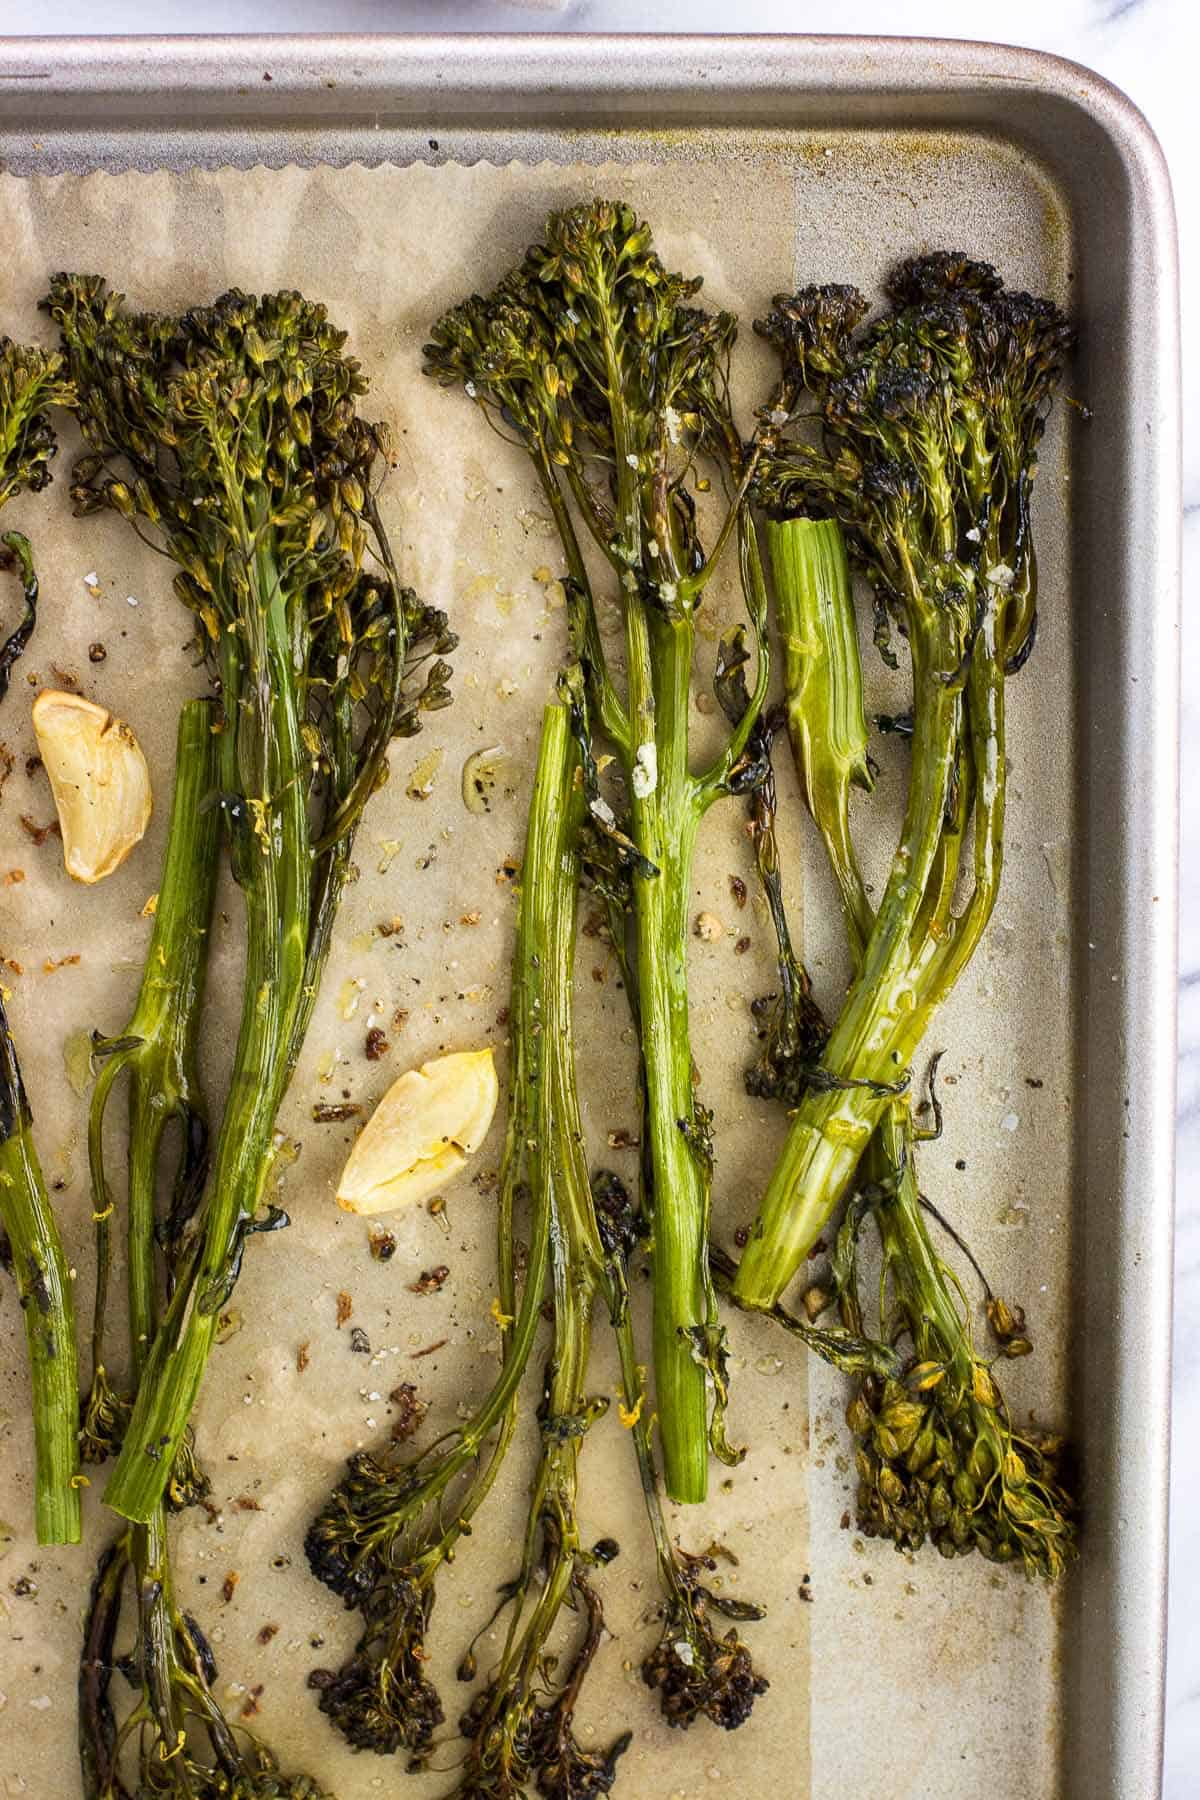 An overhead view of roasted broccolini spears and garlic cloves on a parchment-lined baking sheet.